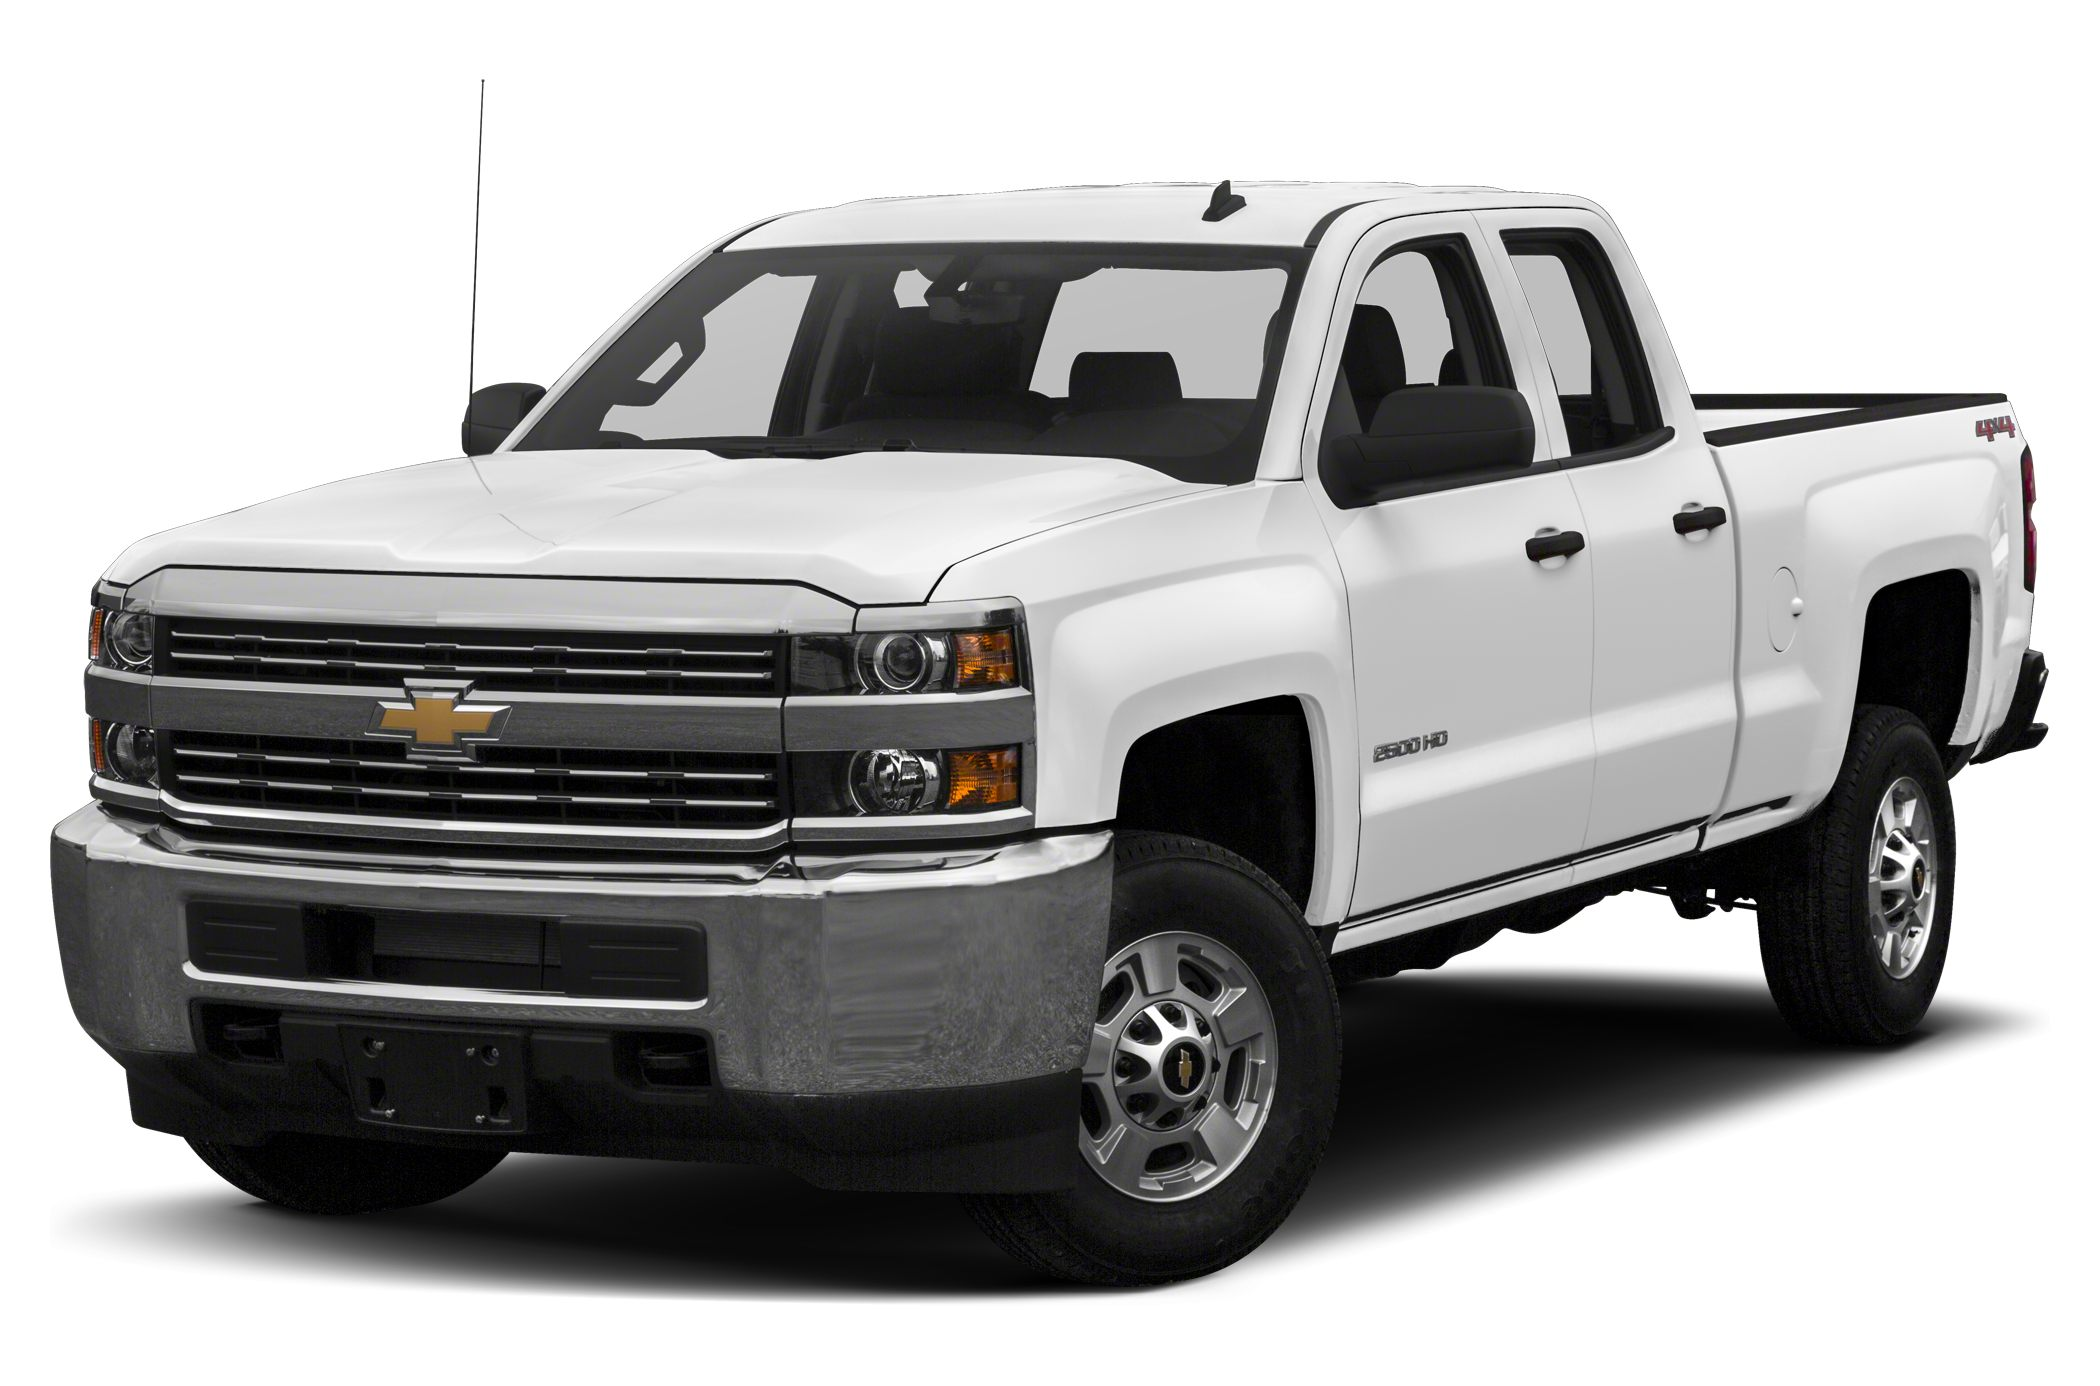 2015 Chevrolet Silverado 2500 WT Crew Cab Pickup for sale in Pinehurst for $41,270 with 10 miles